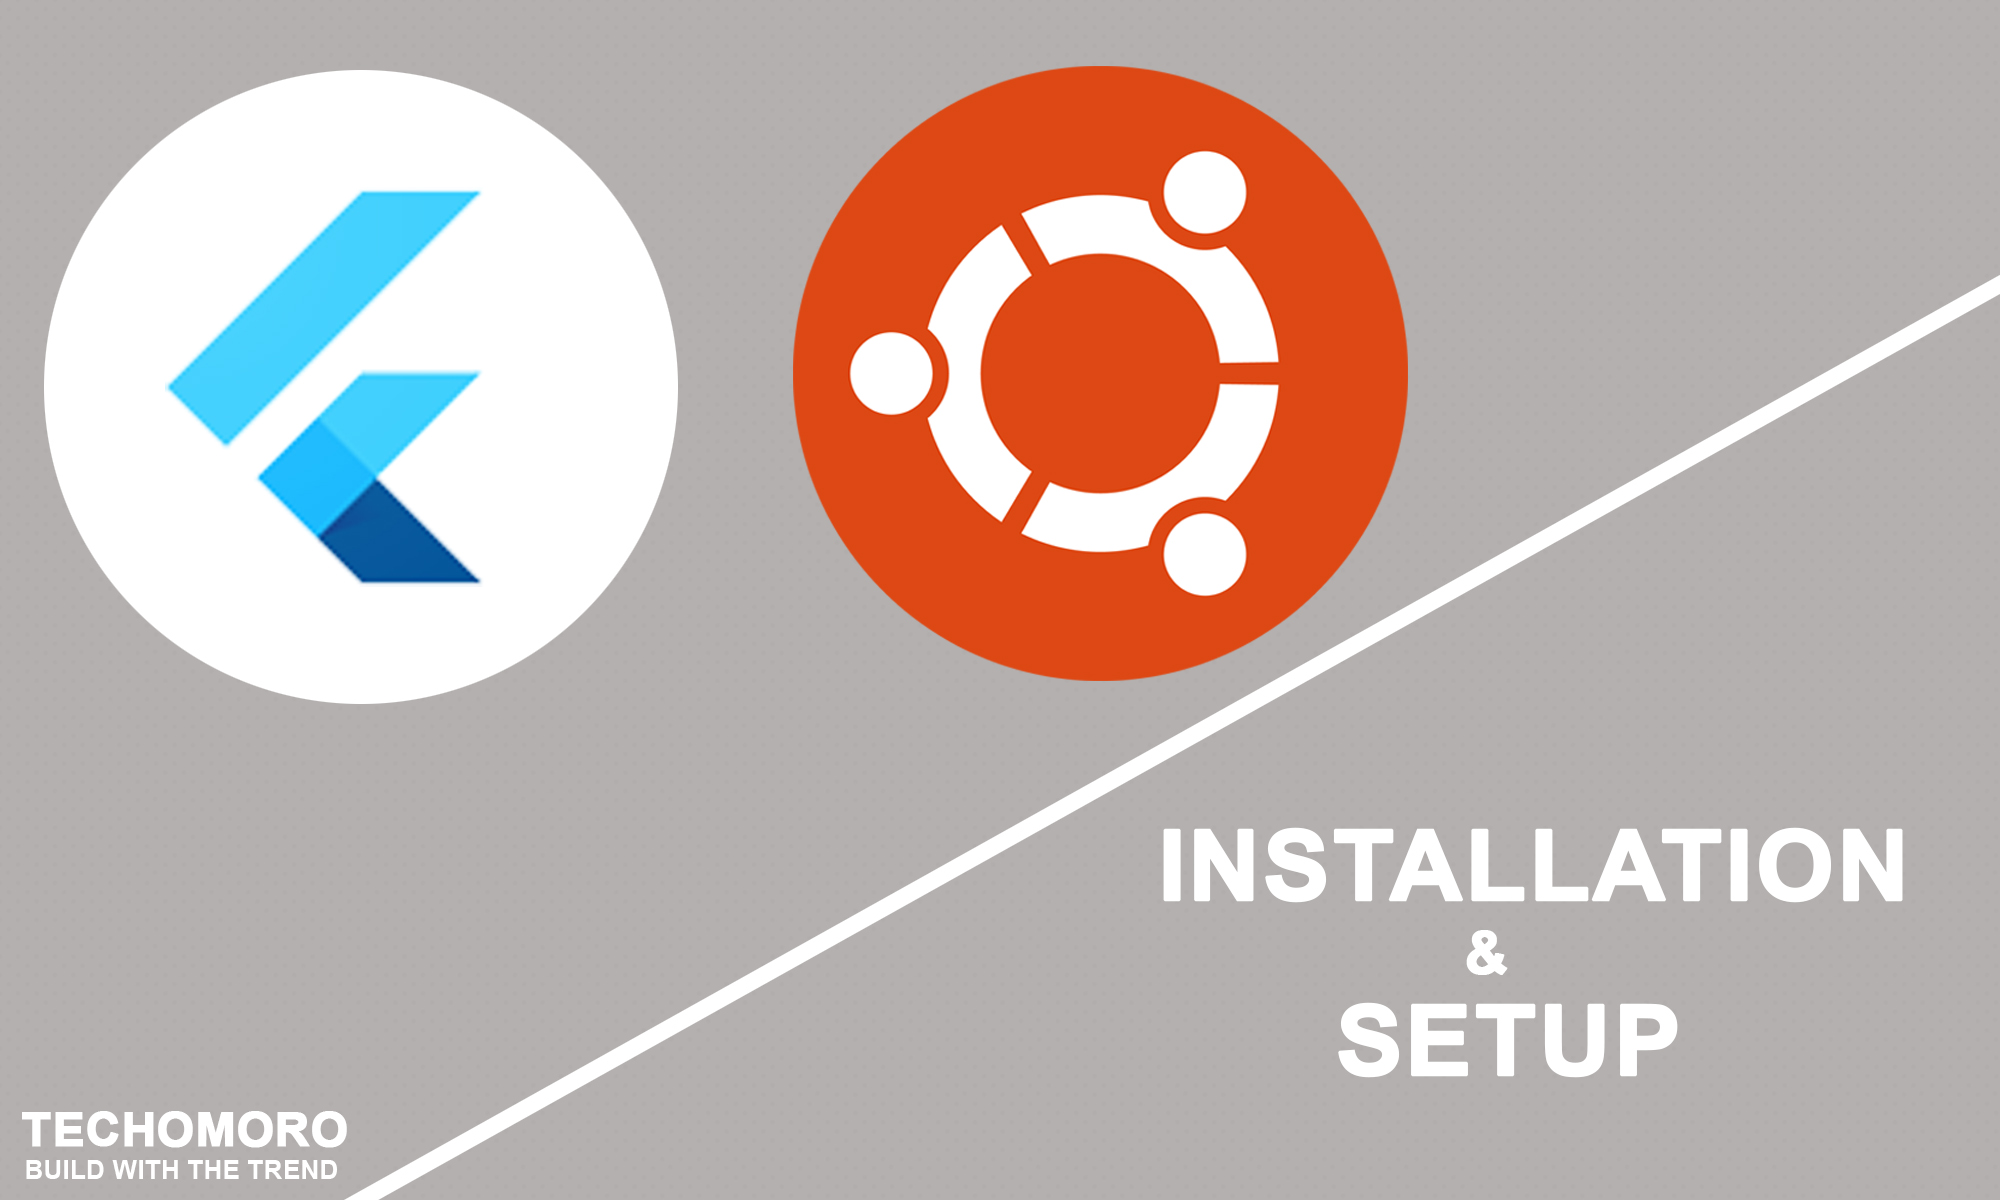 how to install android studio in ubuntu 14.04